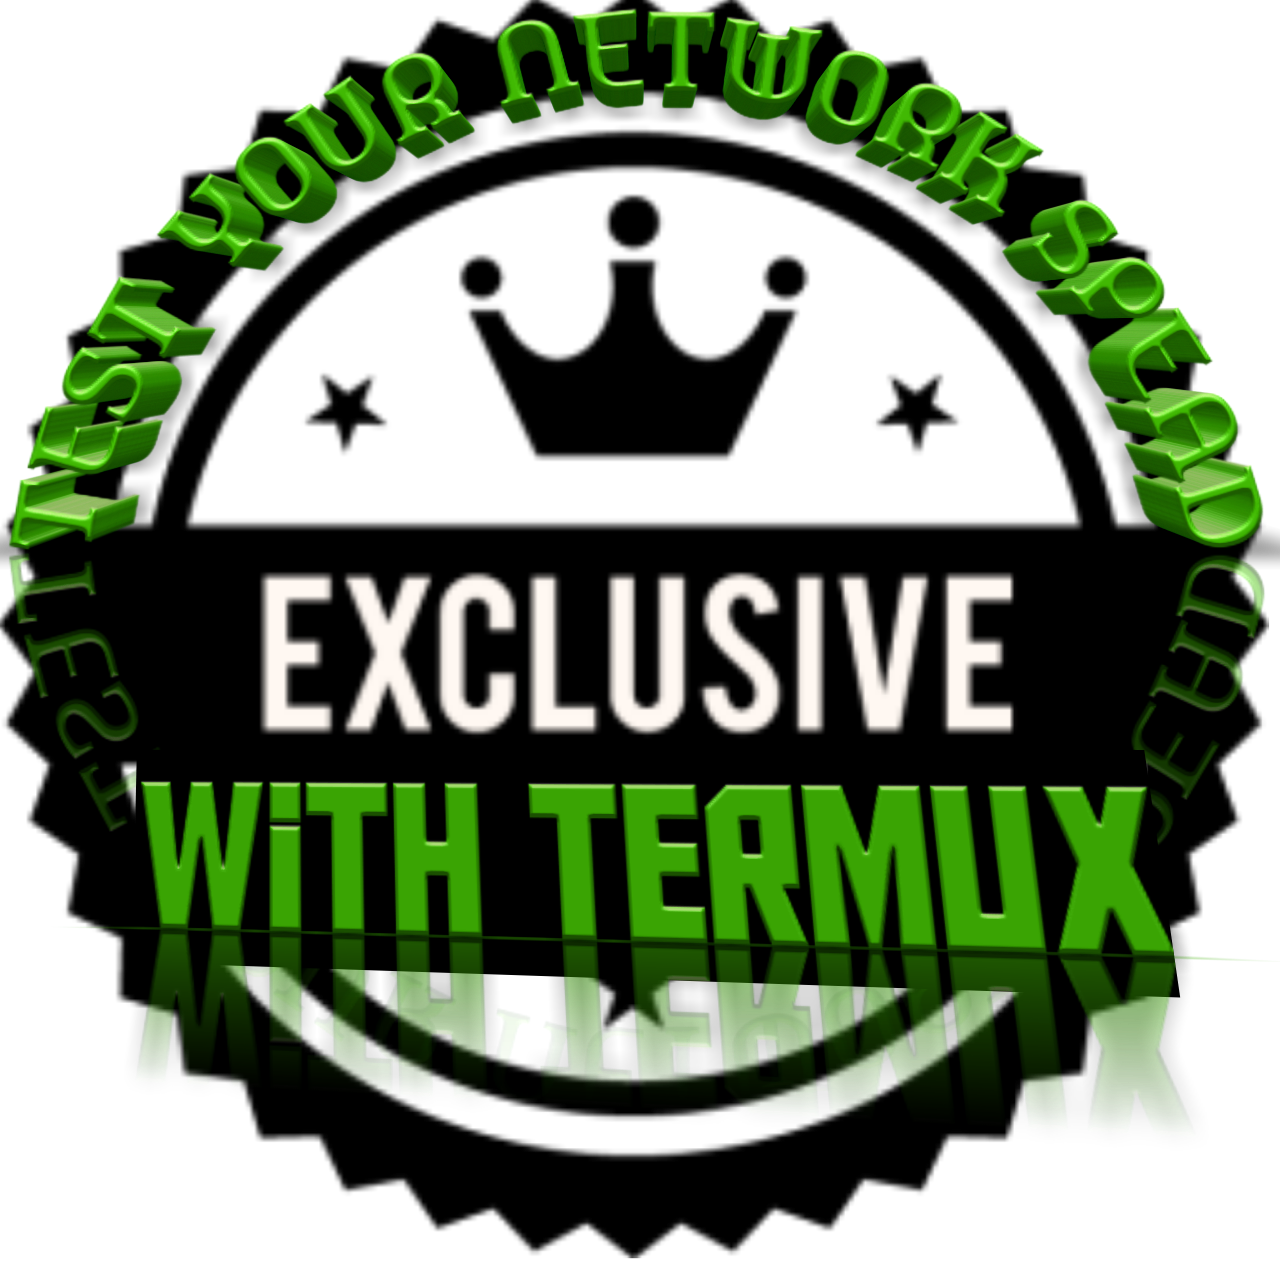 [Secret] Chat with your friends by using Termux  ||Termux দিয়ে চ্যাট করুন বন্ধুদের সাথে